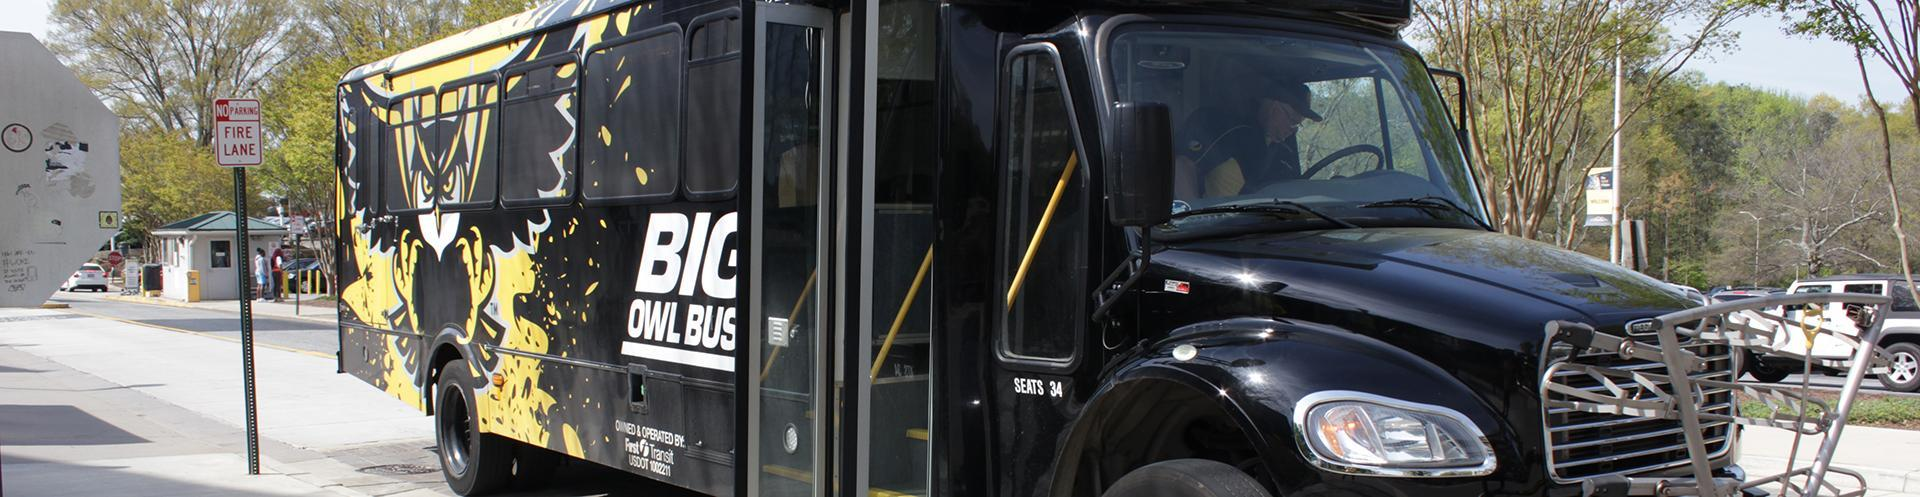 Big Owl Bus Shuttle Routes